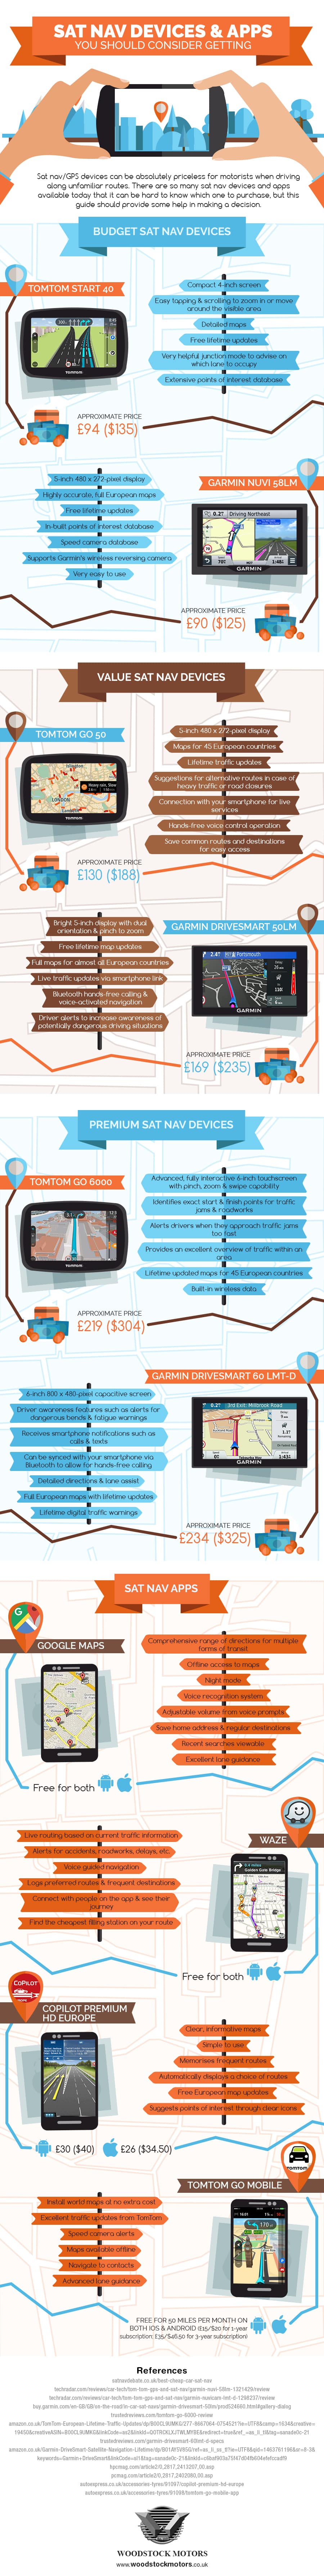 Sat-Nav-Devices-guide-Apps-infographic